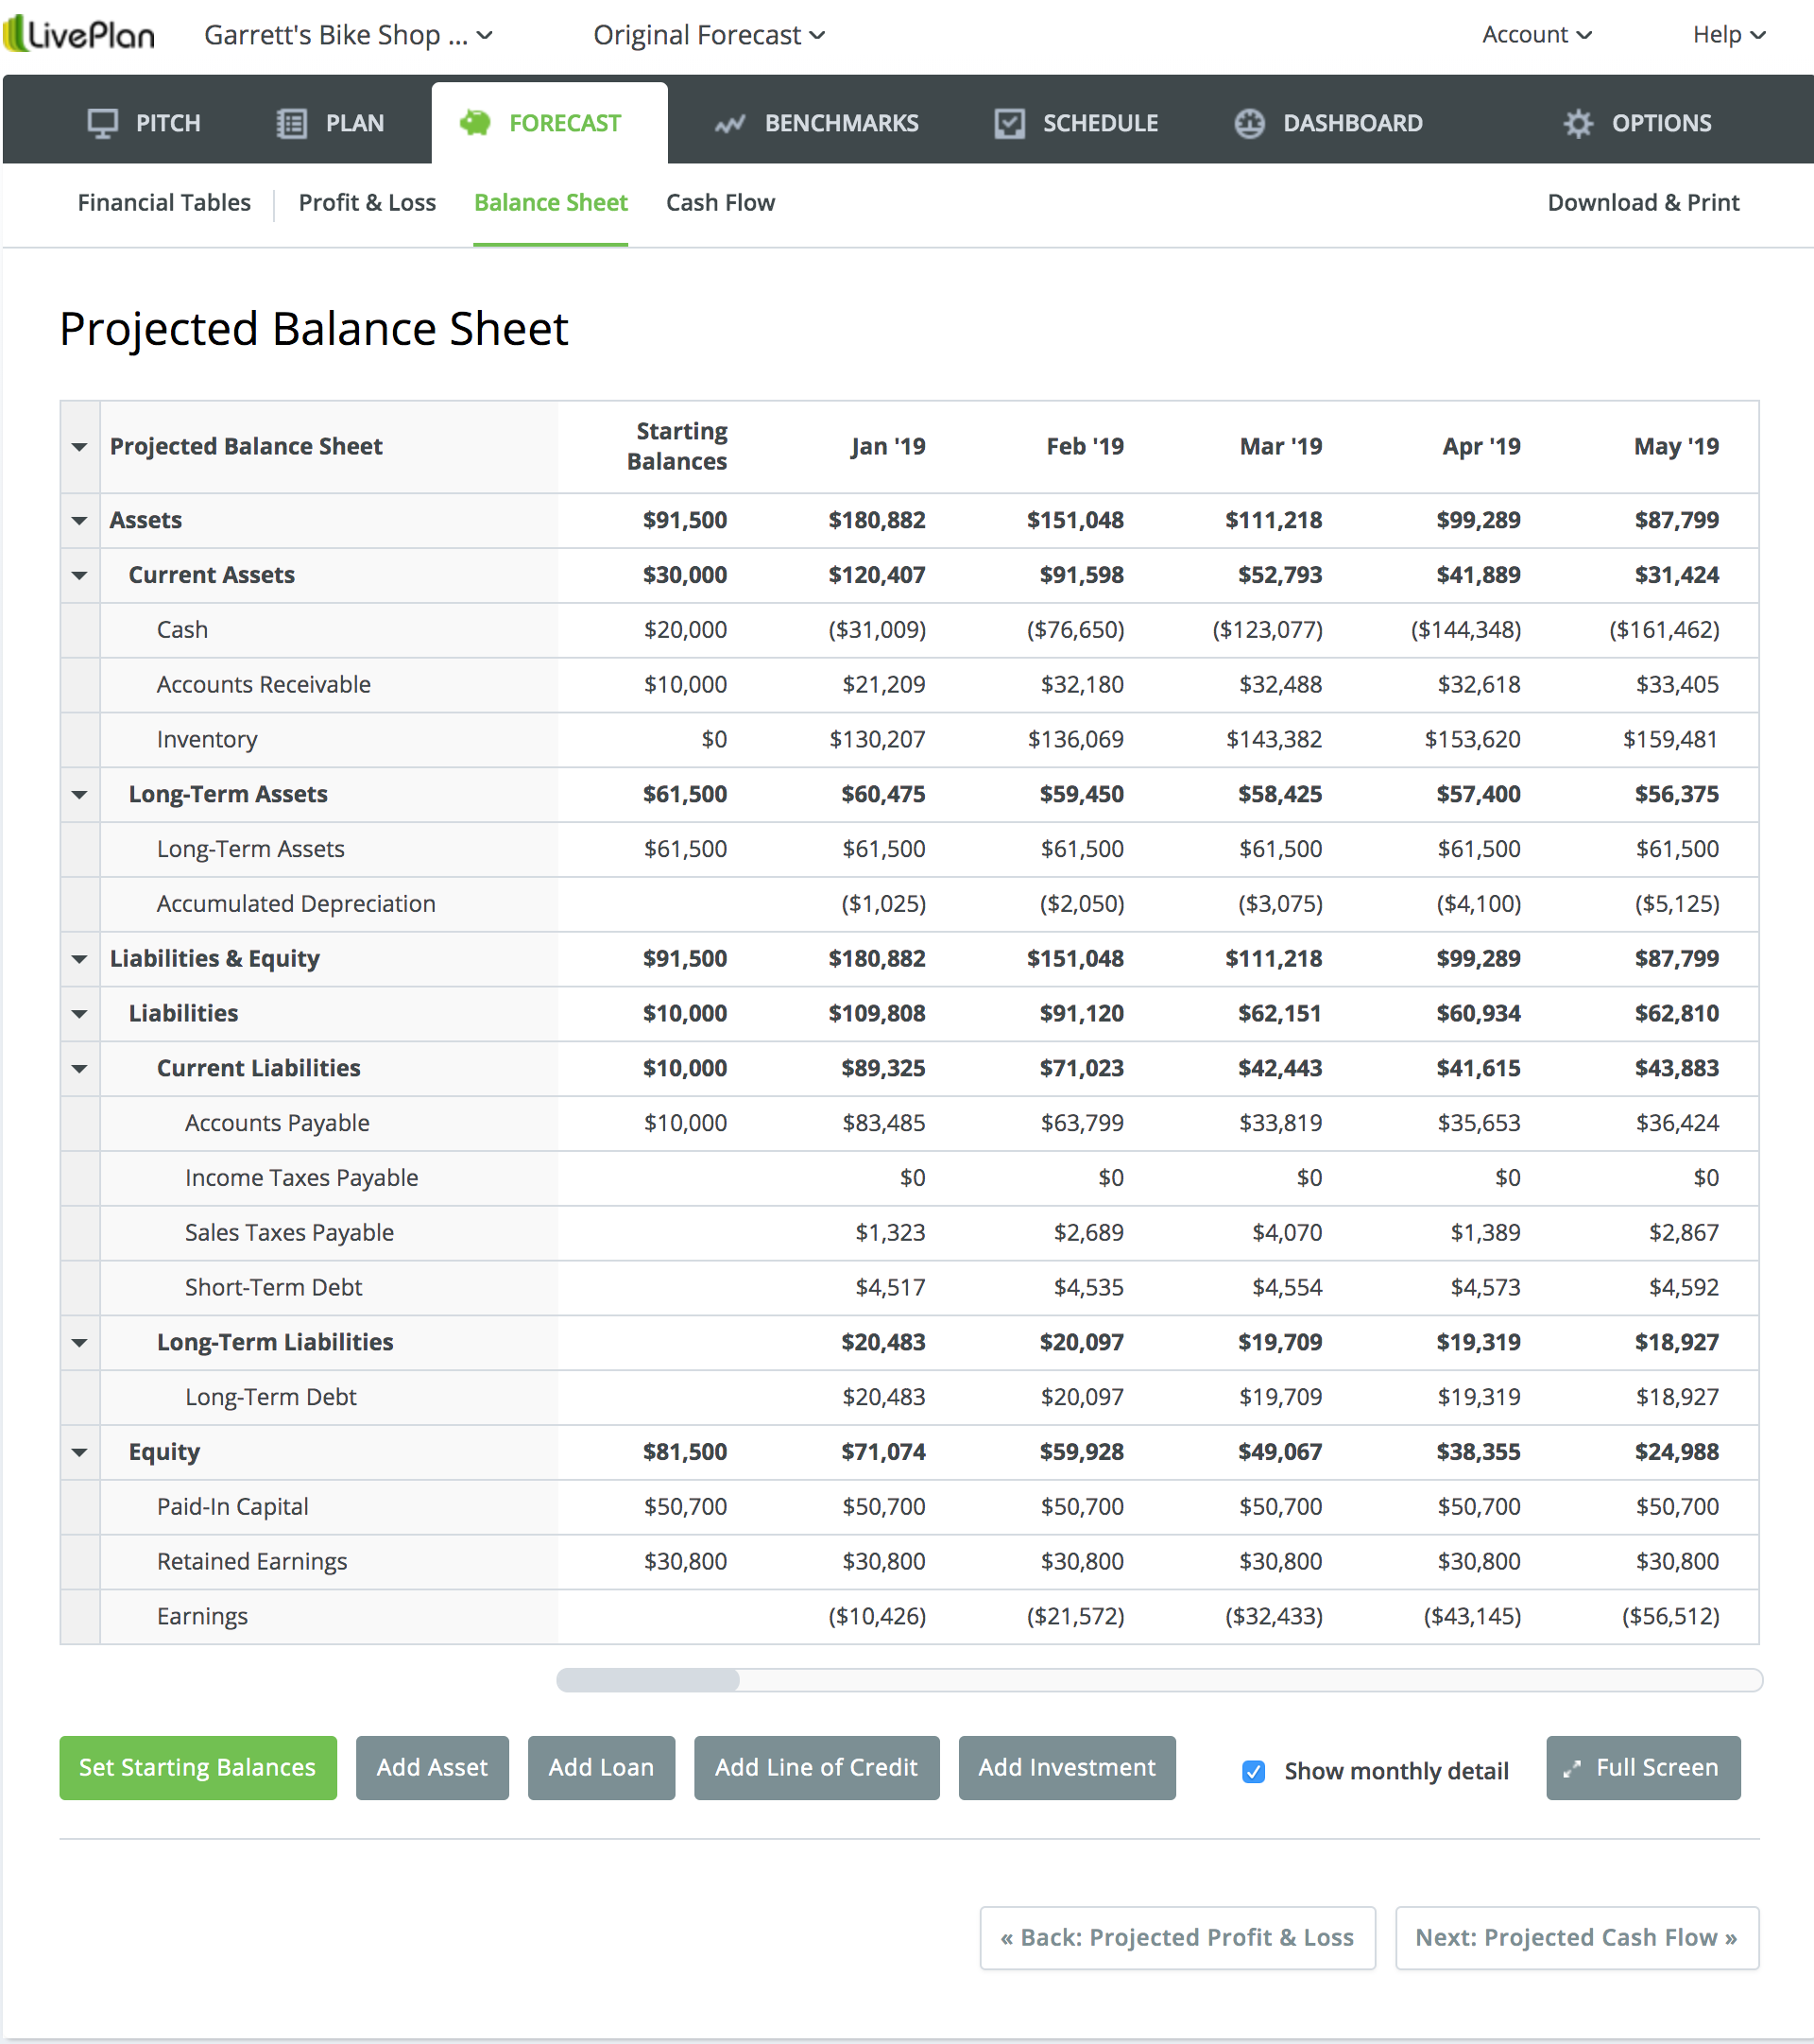 The balance sheet in LivePlan